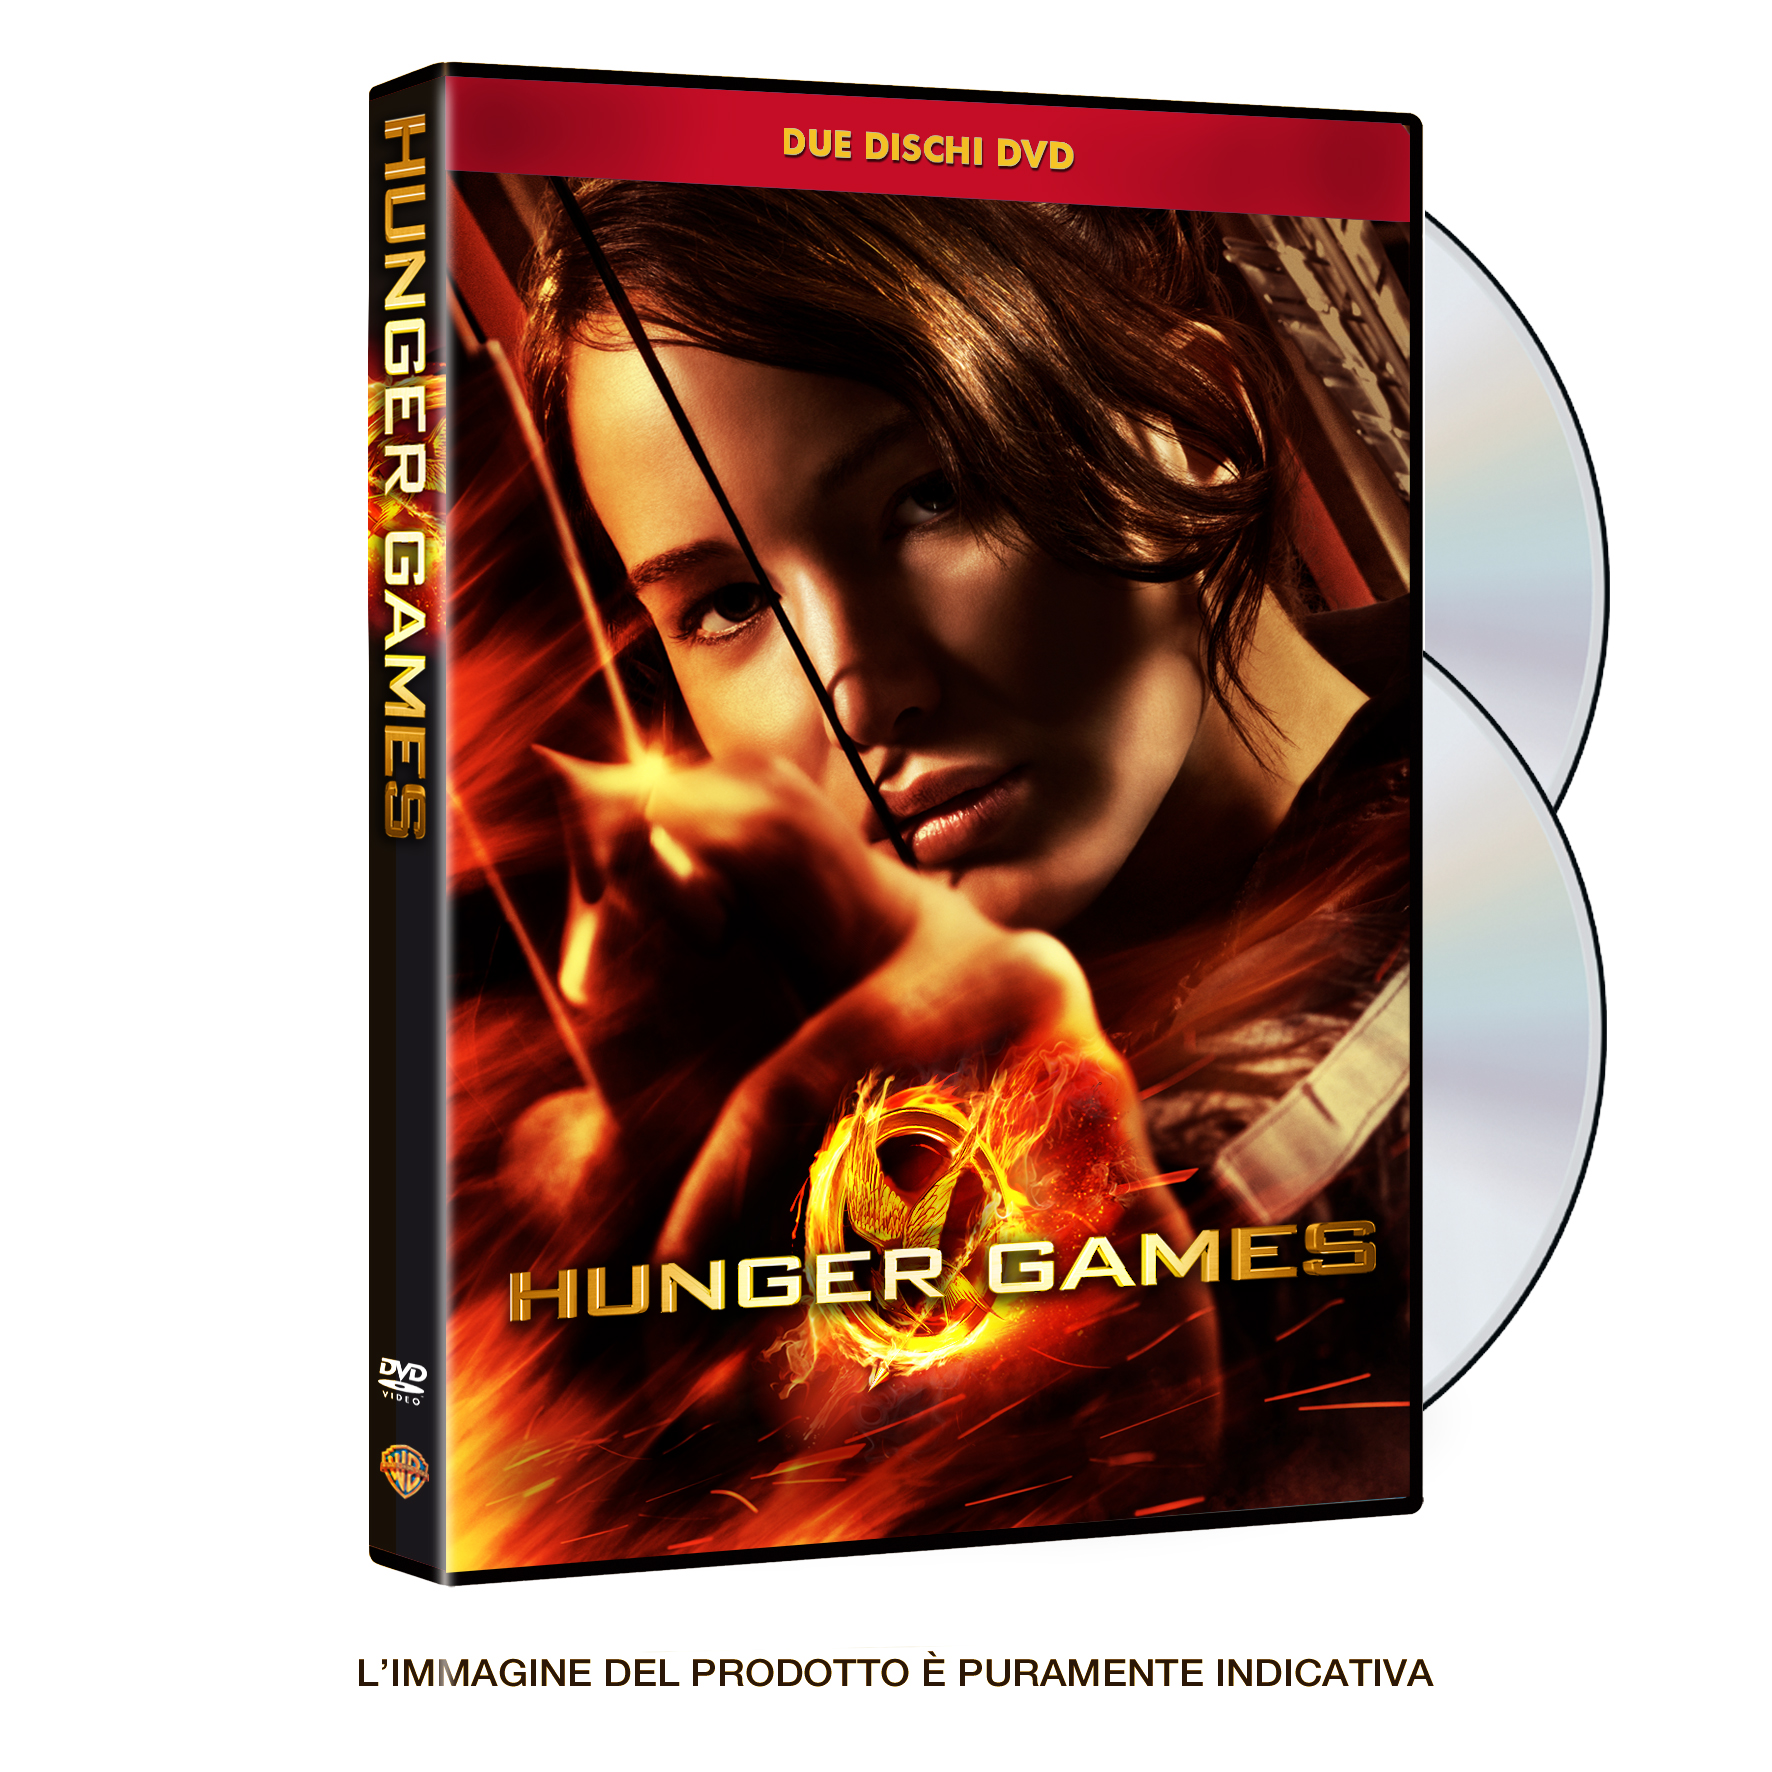 Hunger games dvd special edition